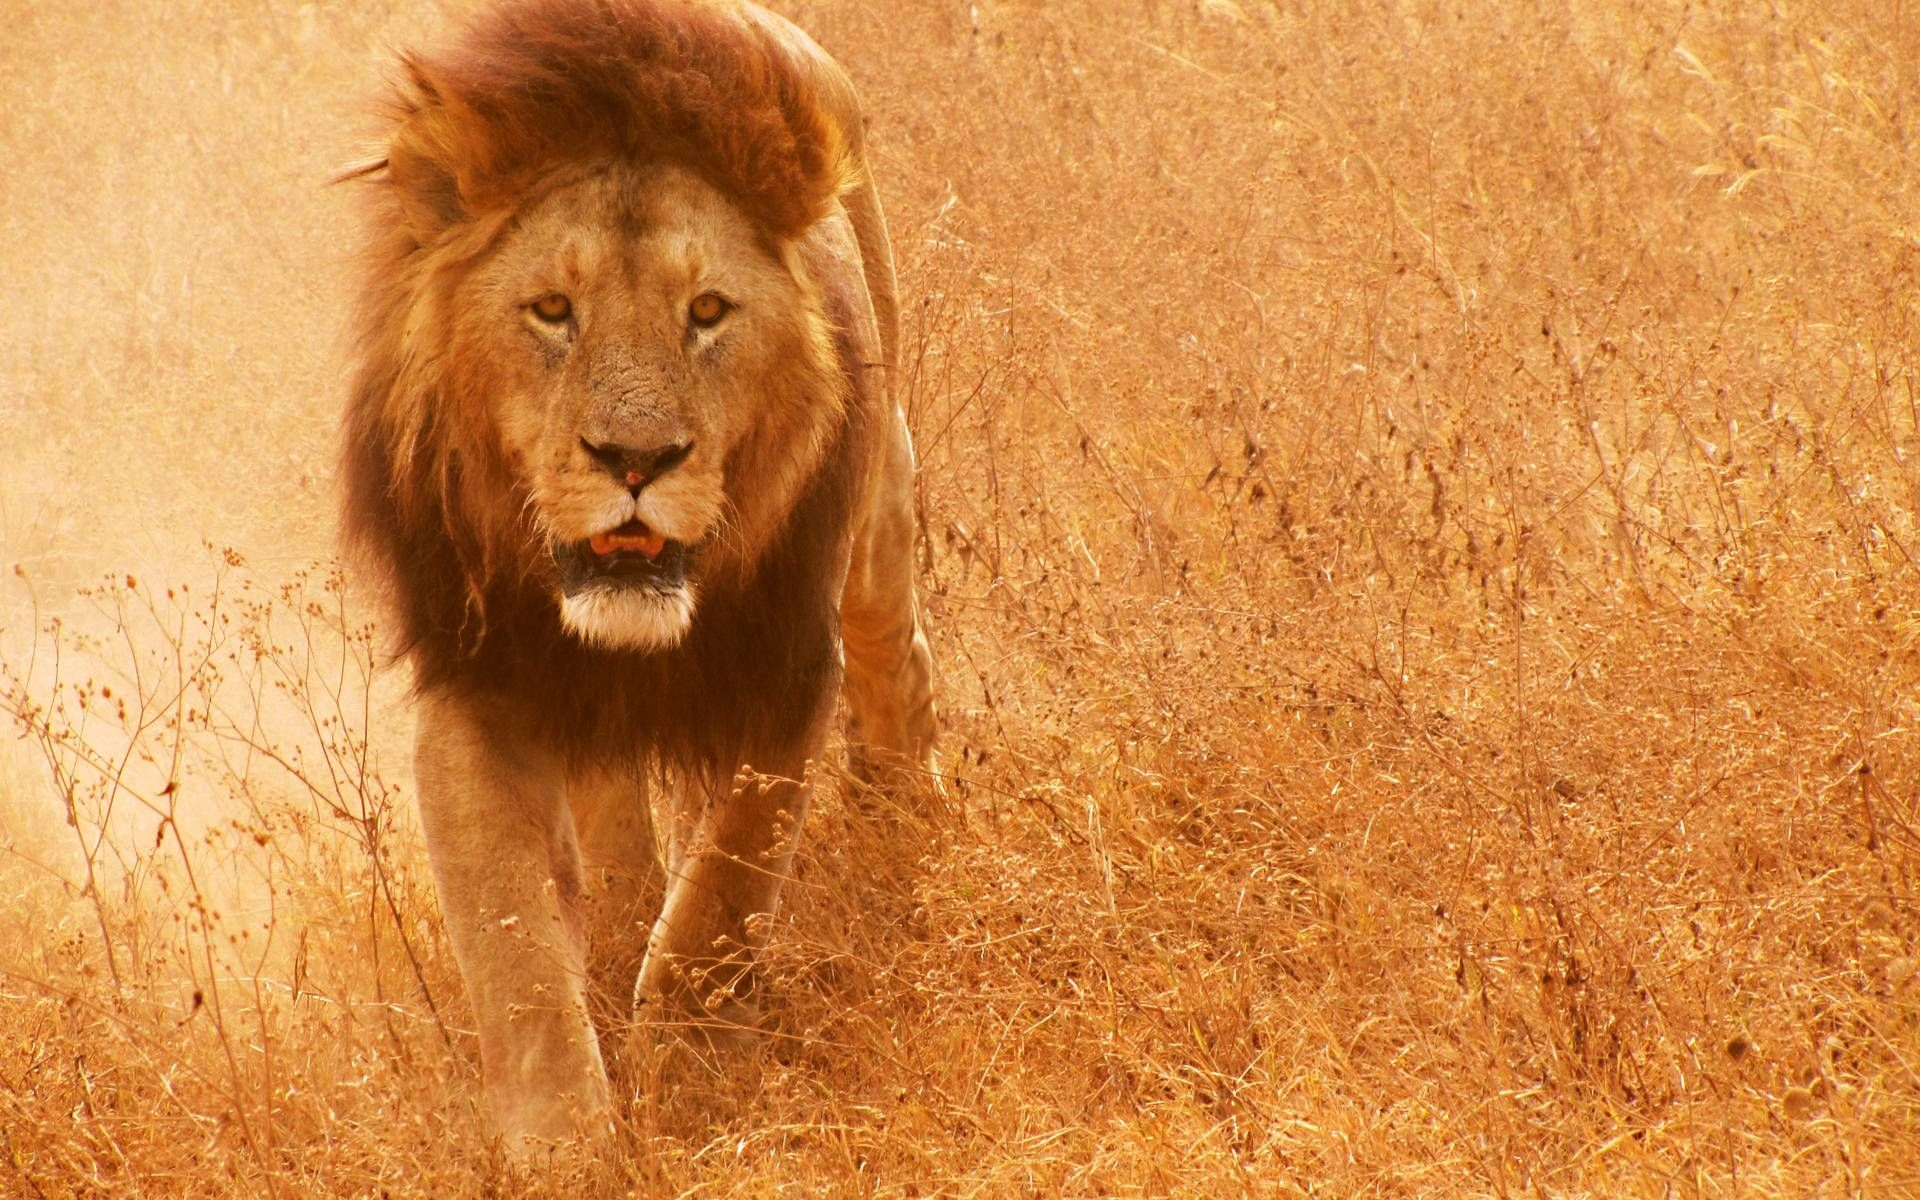 Best 25 Lion Hd Wallpaper Ideas On Pinterest: Pin By Khalilahmadkhan On Lion HD Wallpapers And